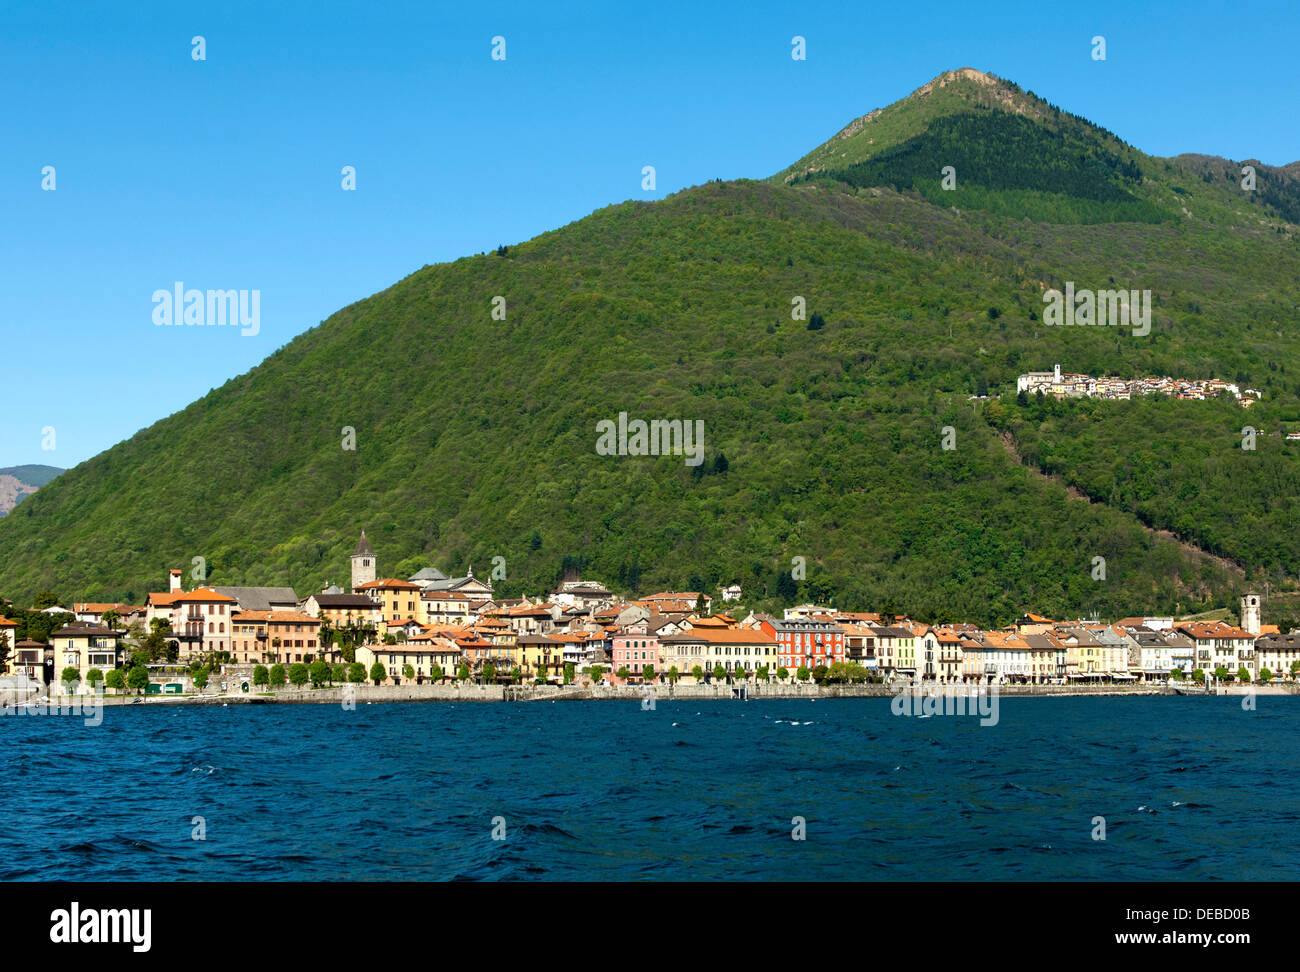 Cannobio on Lake Maggiore with the hamlet of Sant'Agata in a deciduous forest on a mountain slope, Cannobio, Piedmont - Stock Image